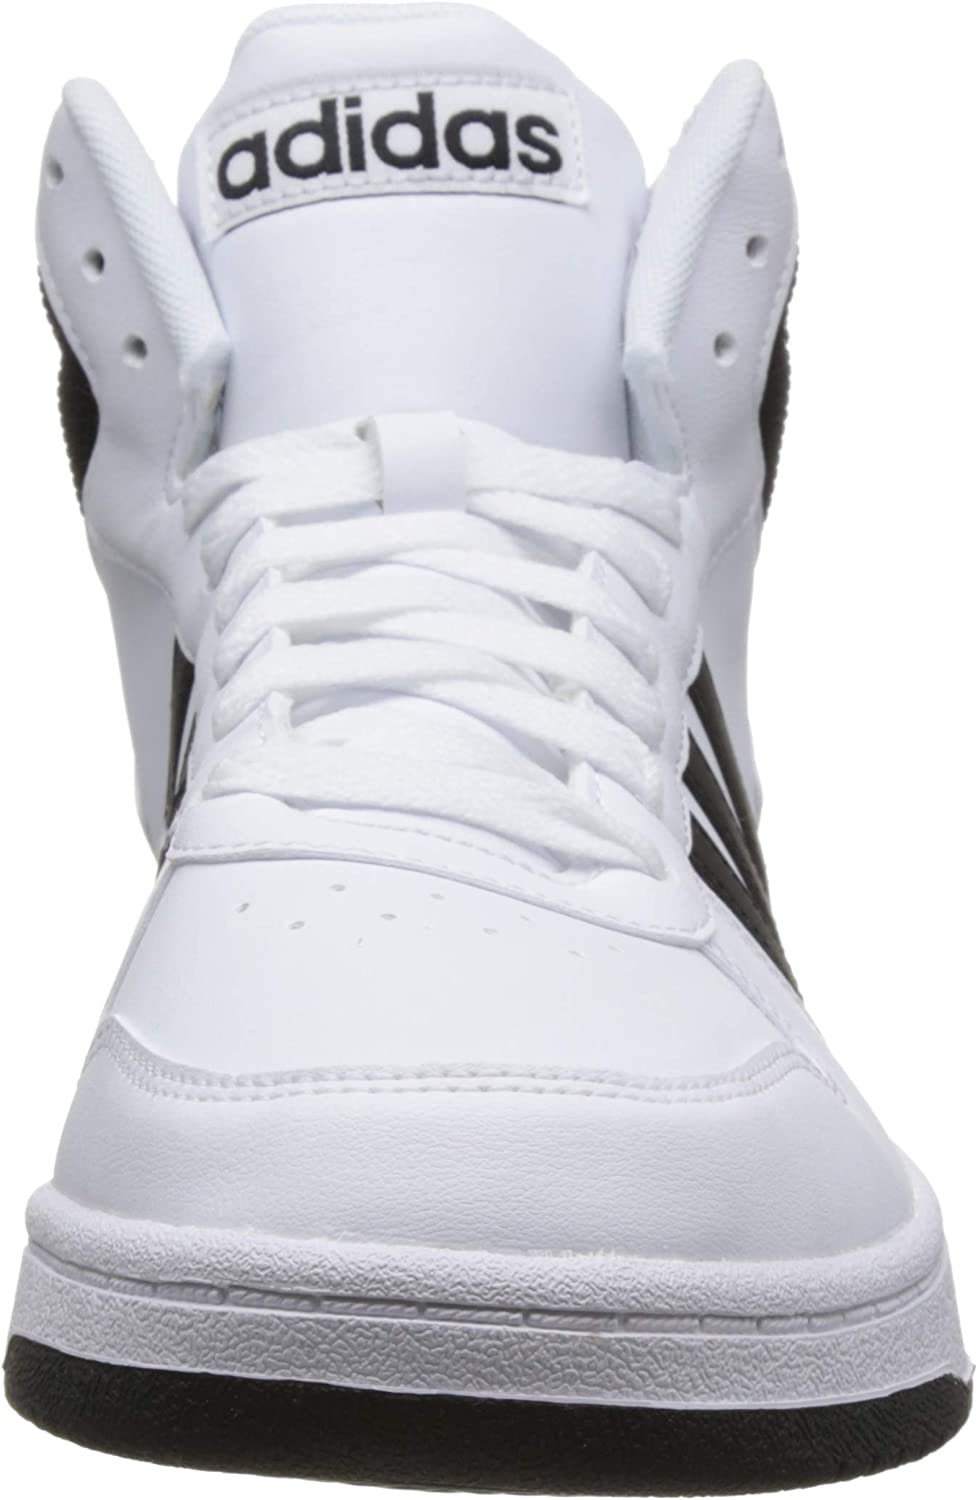 adidas Hoops 2.0 Mid, Chaussures de Fitness Homme